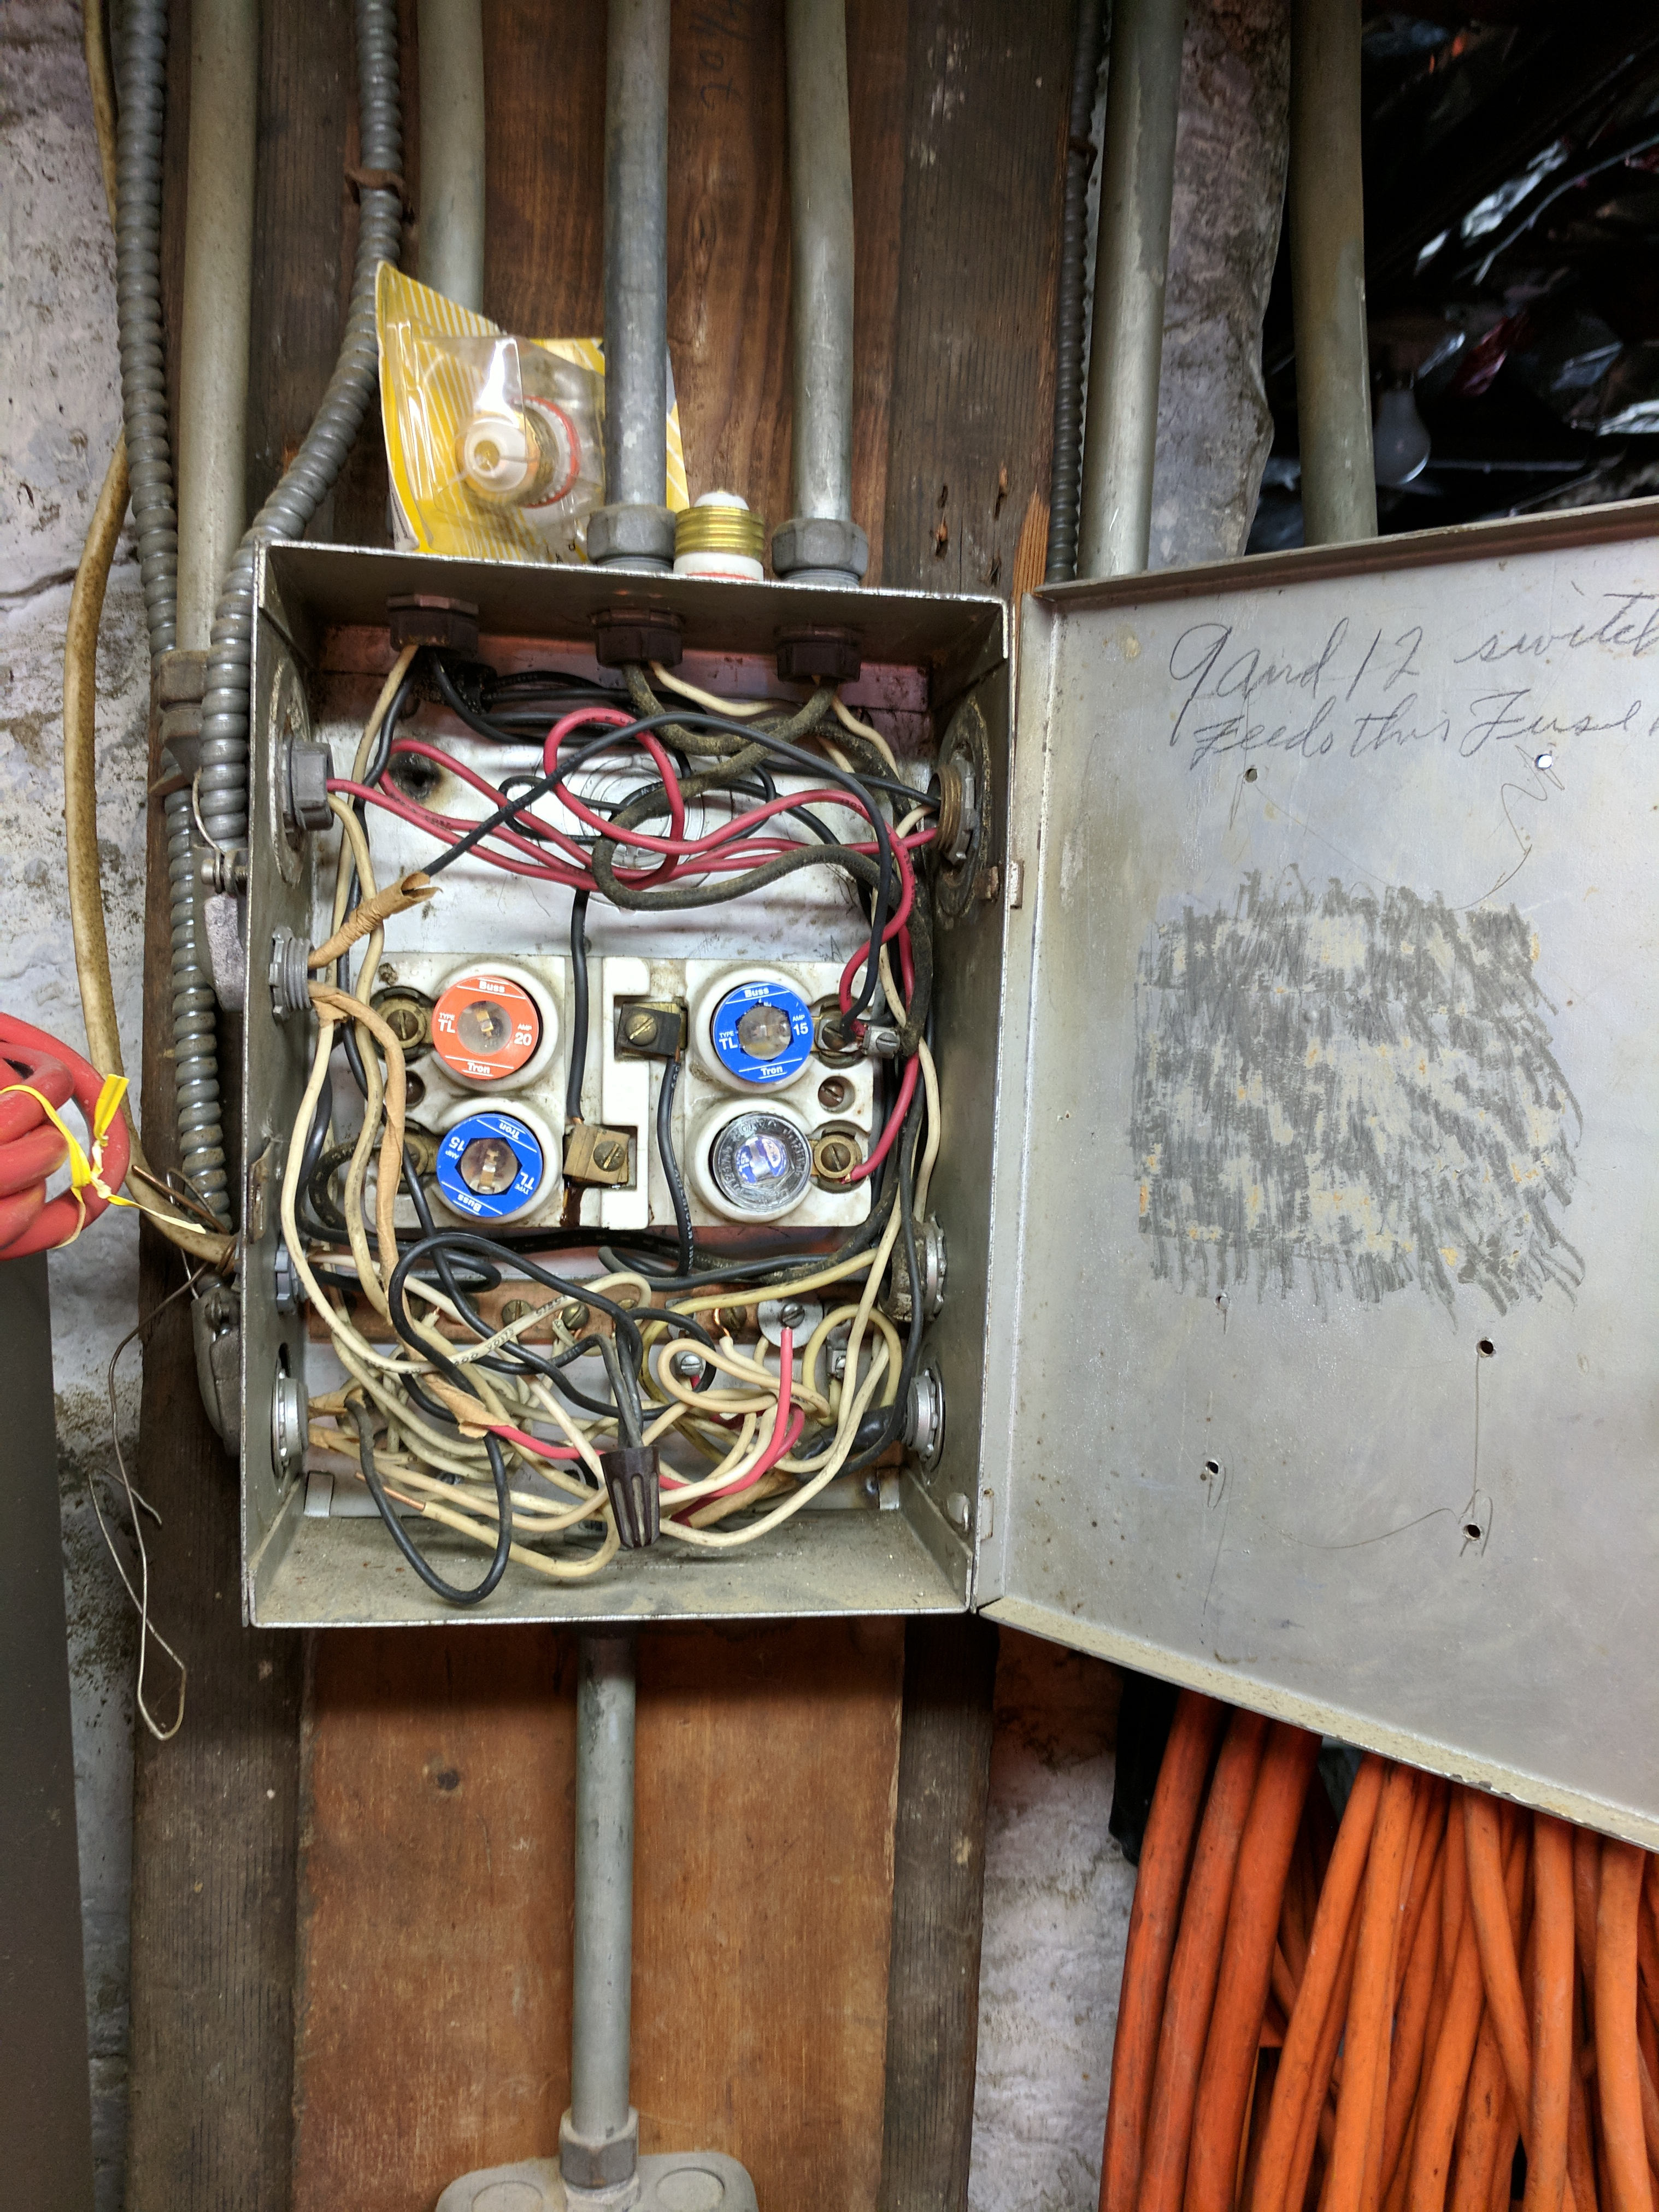 Replaced Old Electrical Fuses With A New Service Panel Home Wiring Share This